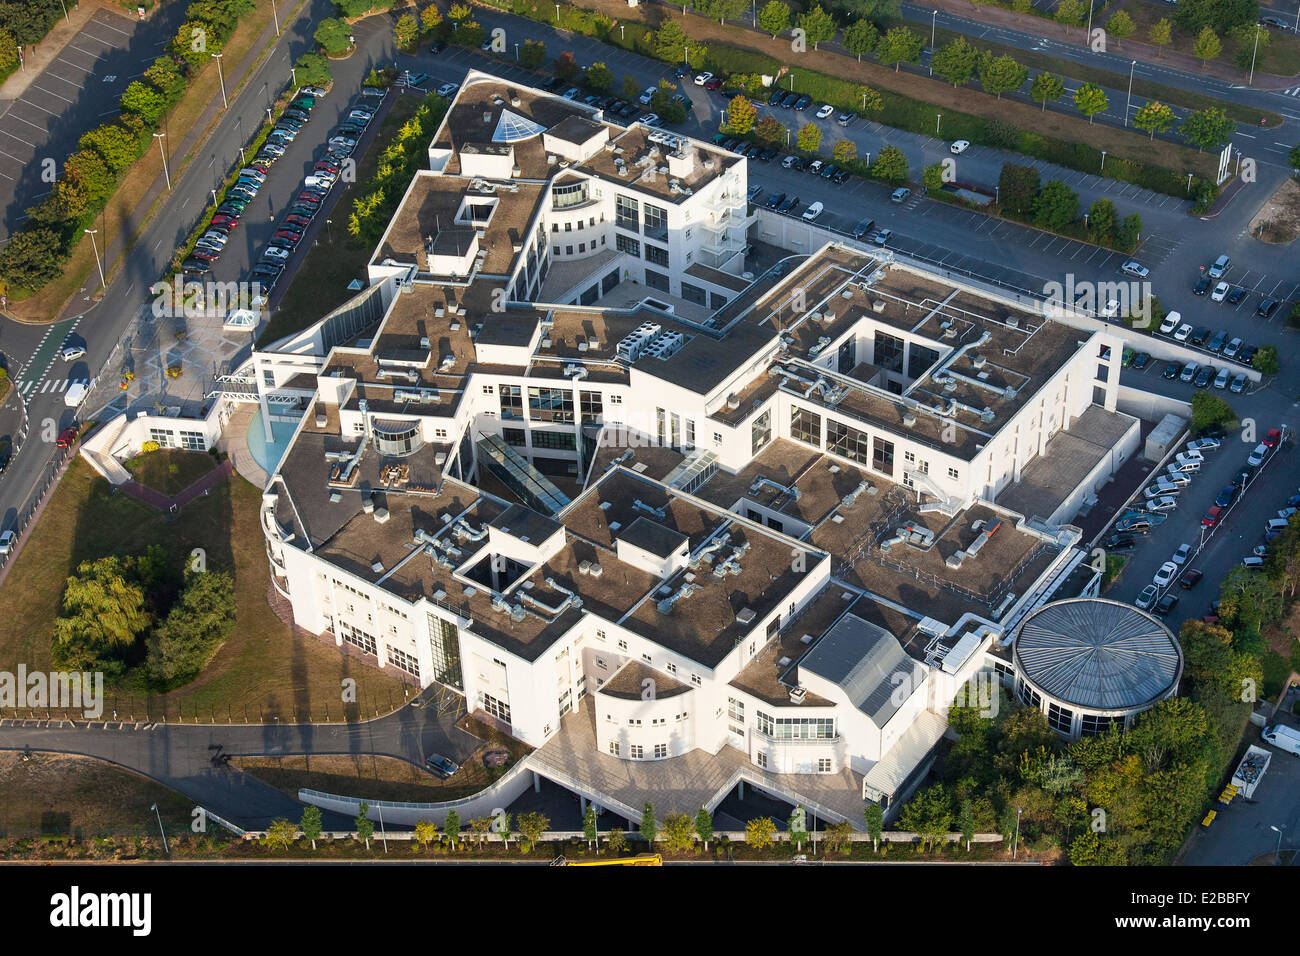 france calvados caen private hospital saint martin aerial view stock photo 70321327 alamy. Black Bedroom Furniture Sets. Home Design Ideas